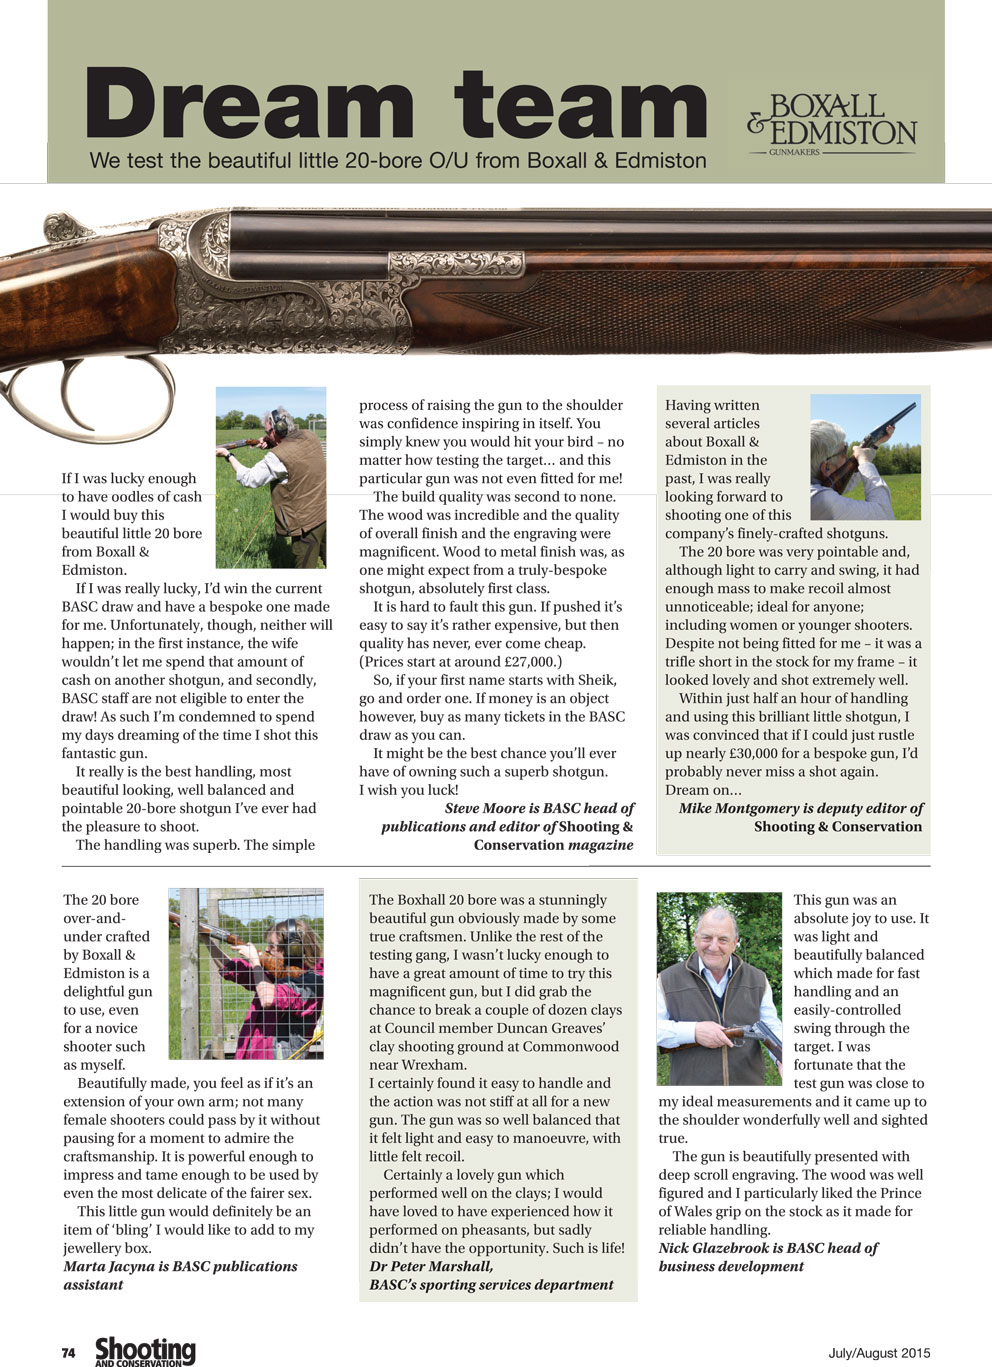 BASC review of Boxall and Edmiston 20 bore over and under shotgun